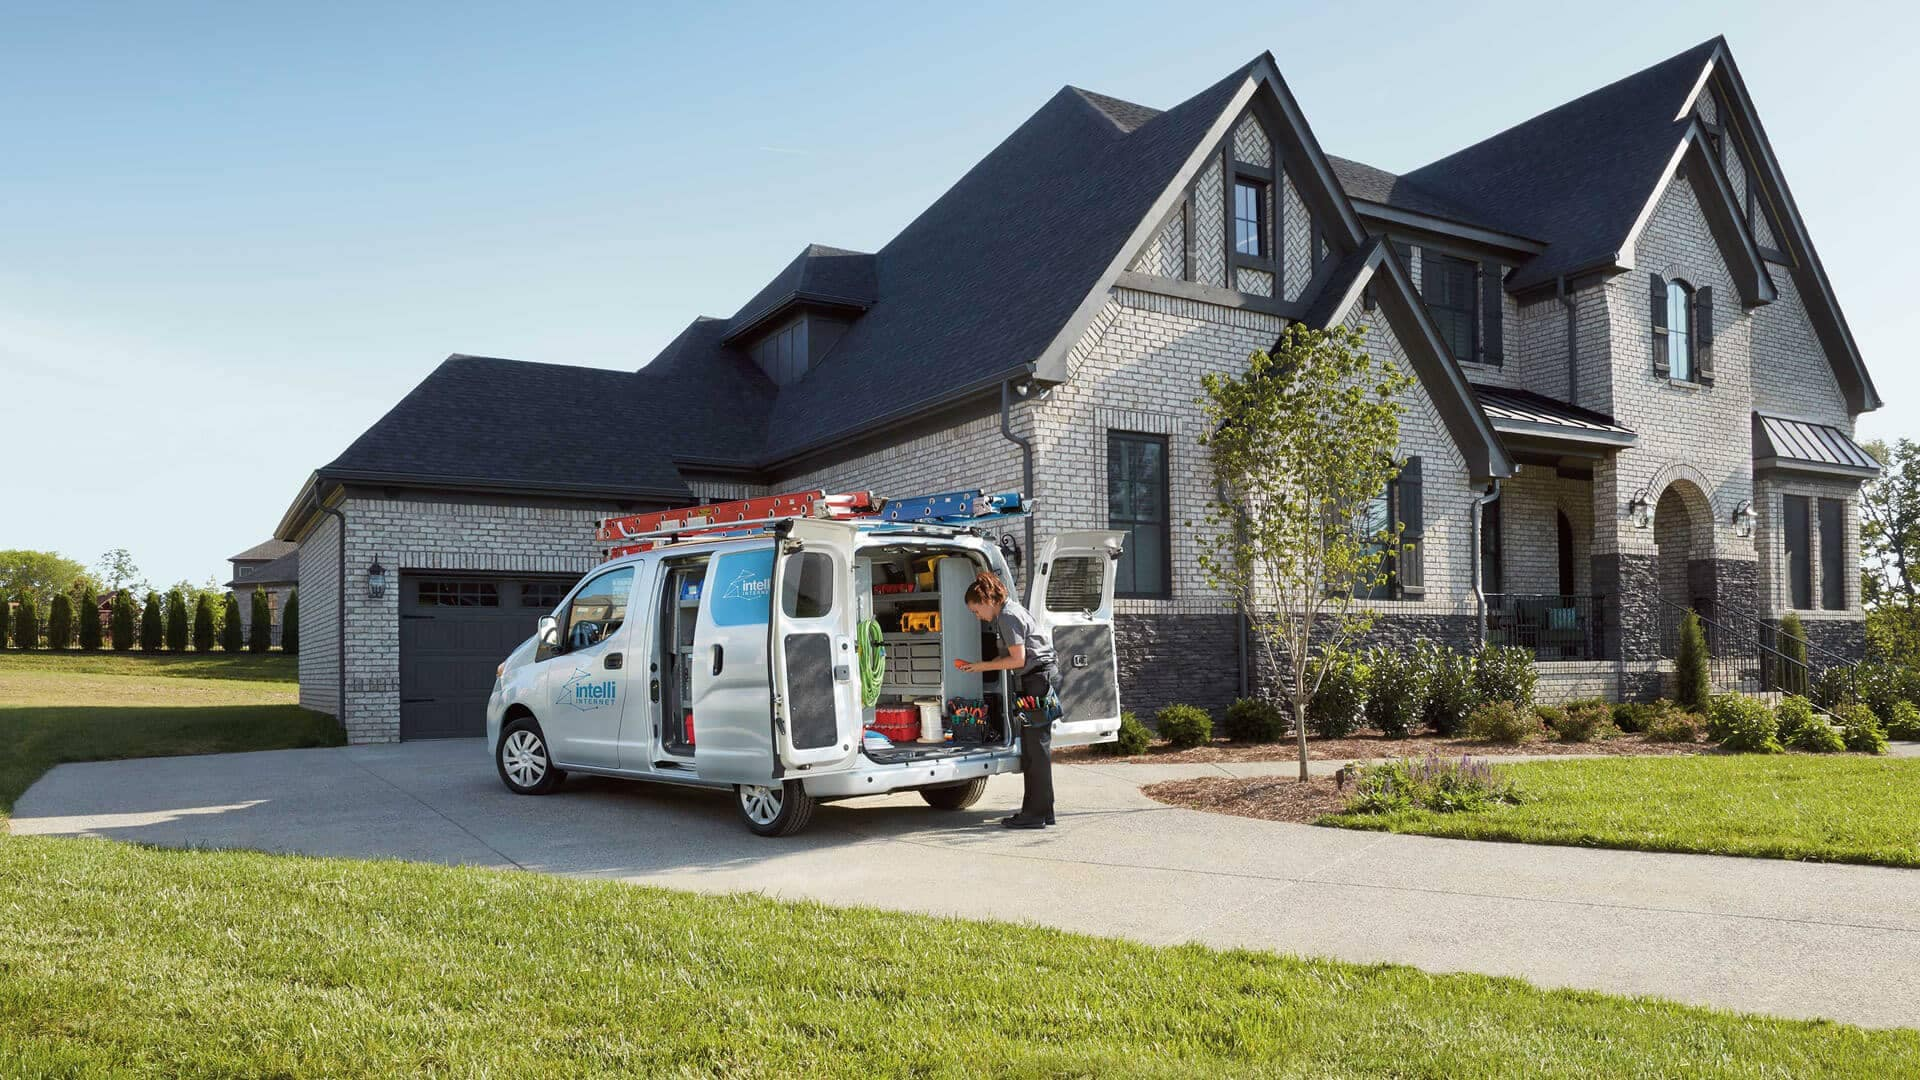 2020 Nissan NV200 Compact Commercial parked in a house driveway with worker getting tools out of the back